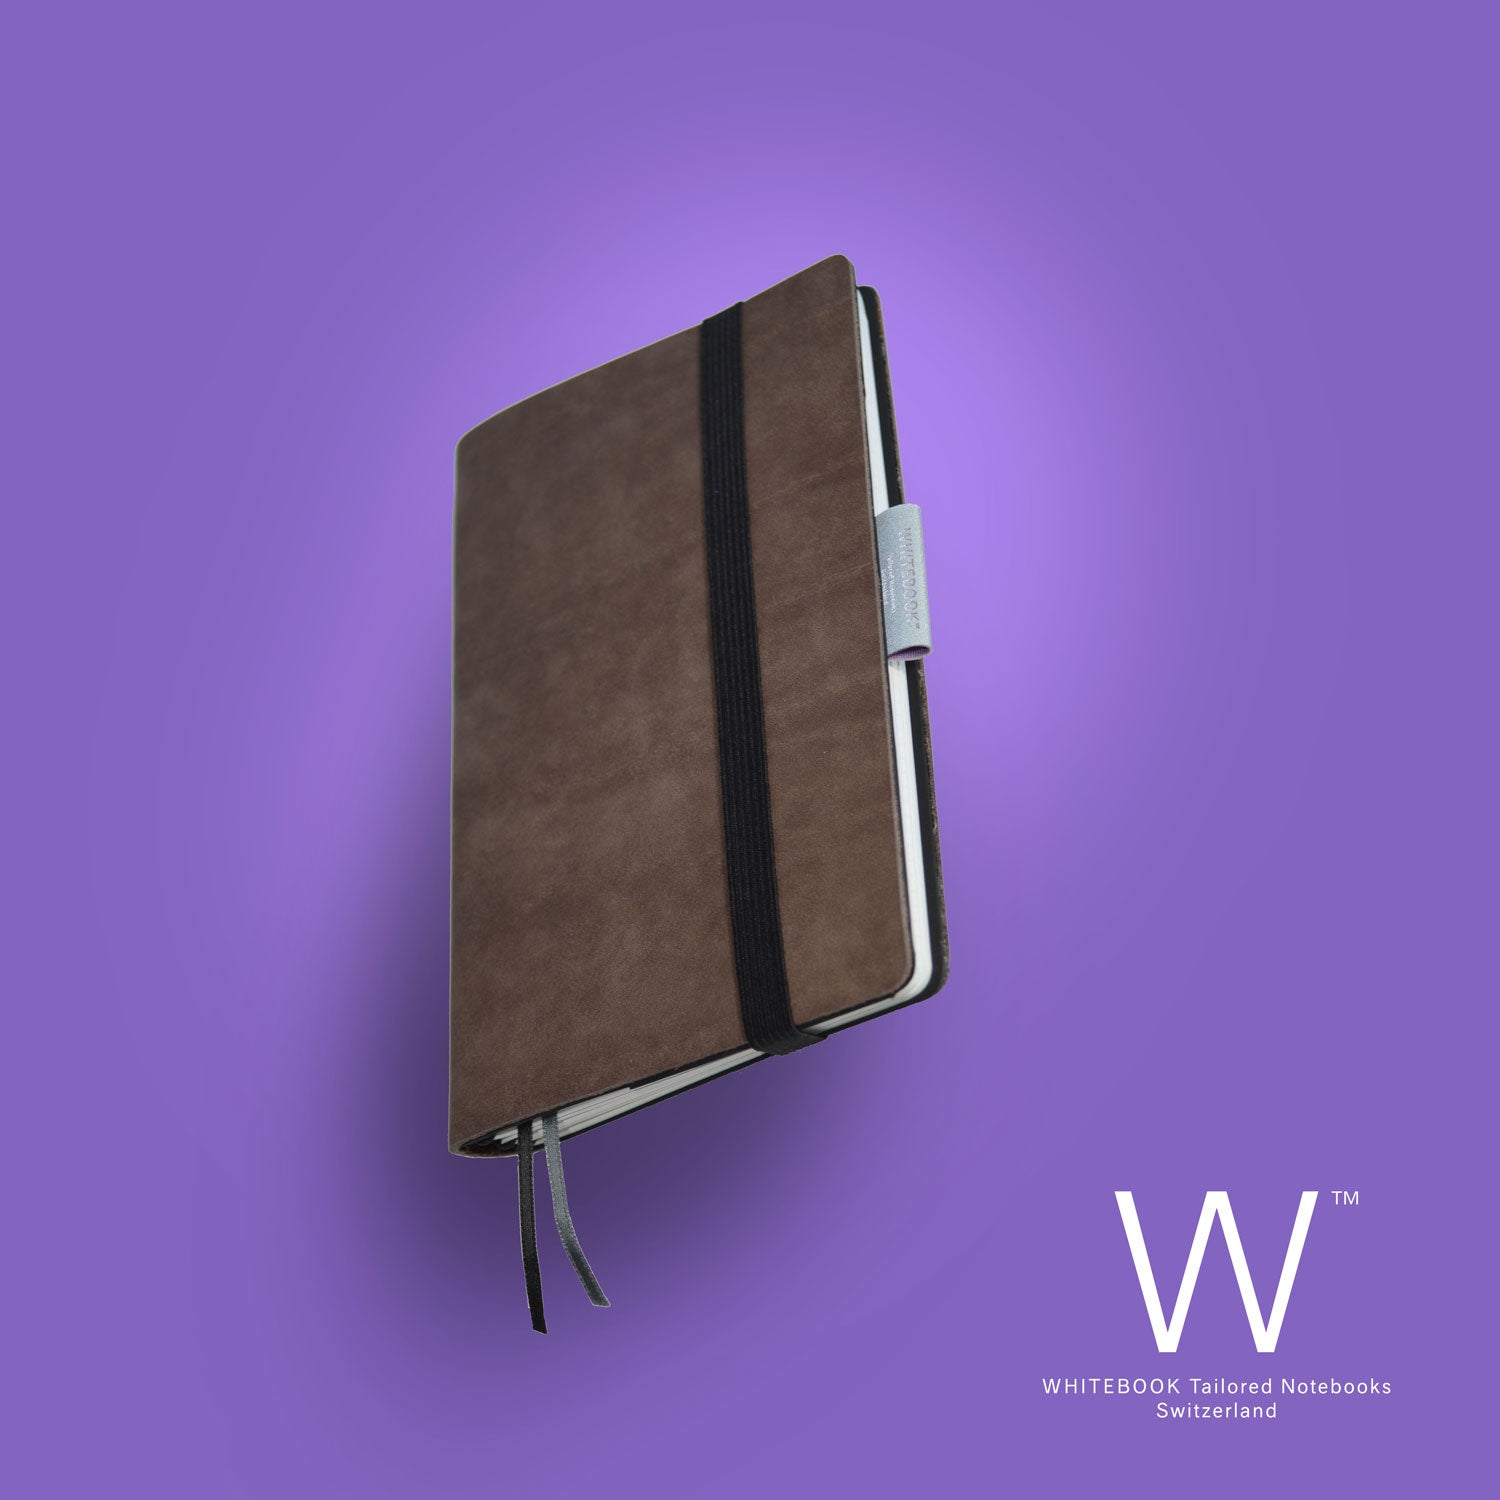 Image of Whitebook Mobile, S205, soft french calf leather, brown antique